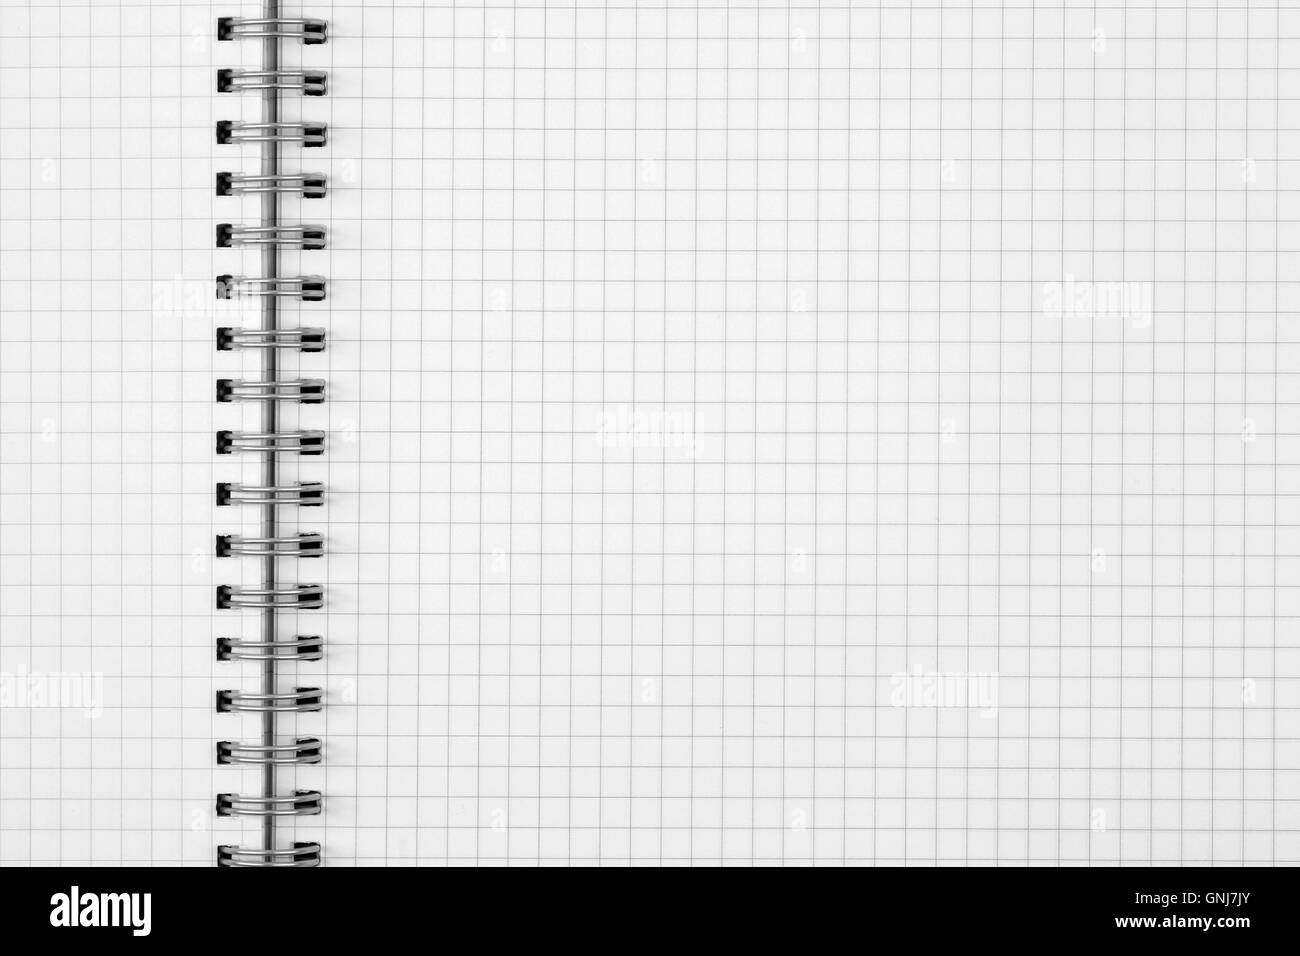 exercise book paper sheet background or grid pattern texture - Stock Image